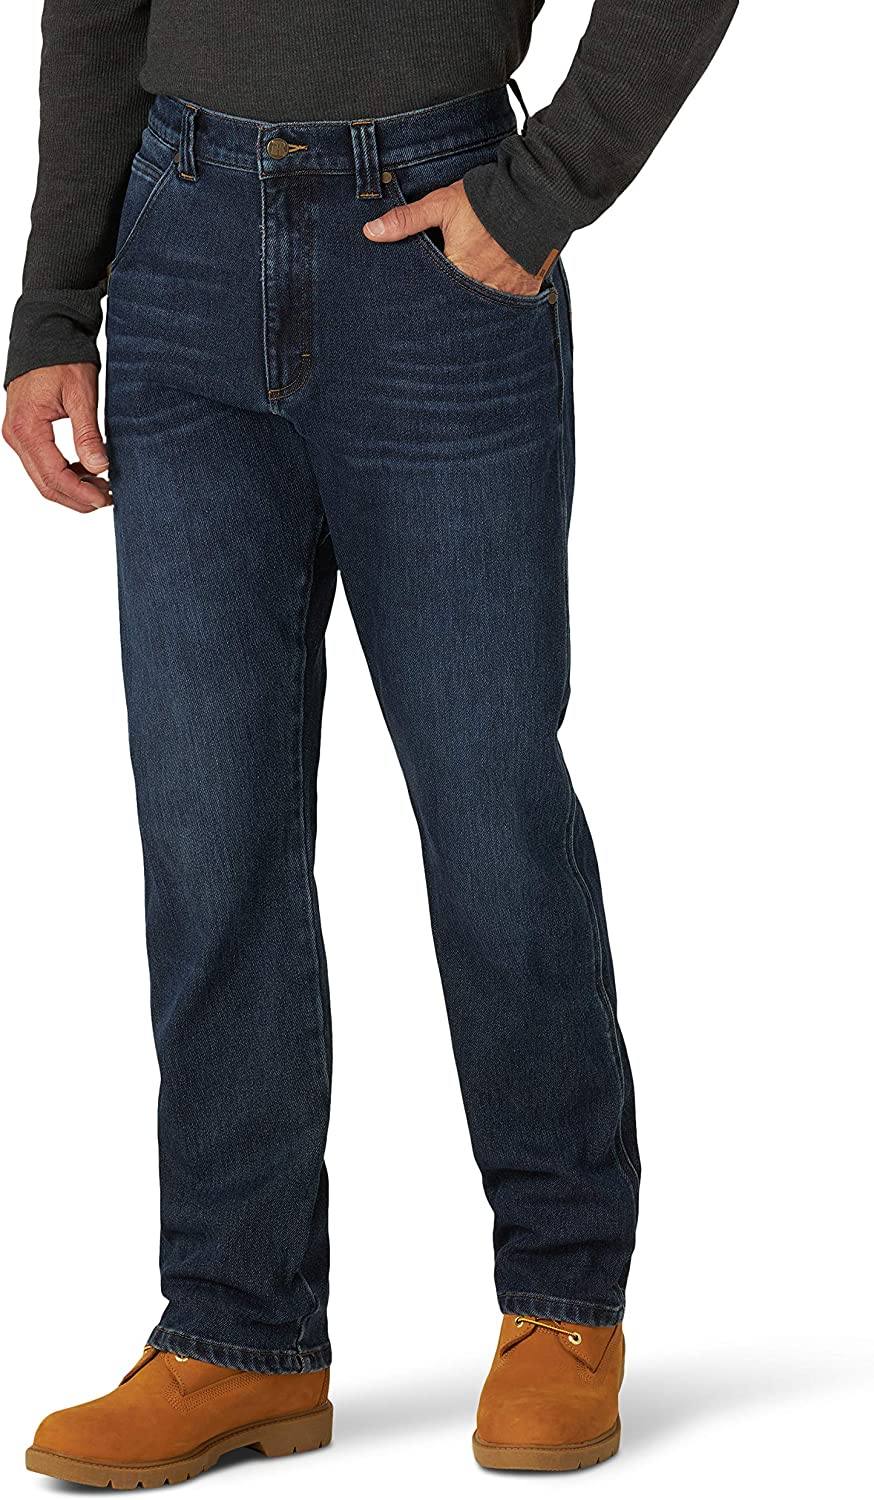 Wrangler Riggs Workwear Men's Outlet SALE Five Max 81% OFF Insulated Layer Pocket Single